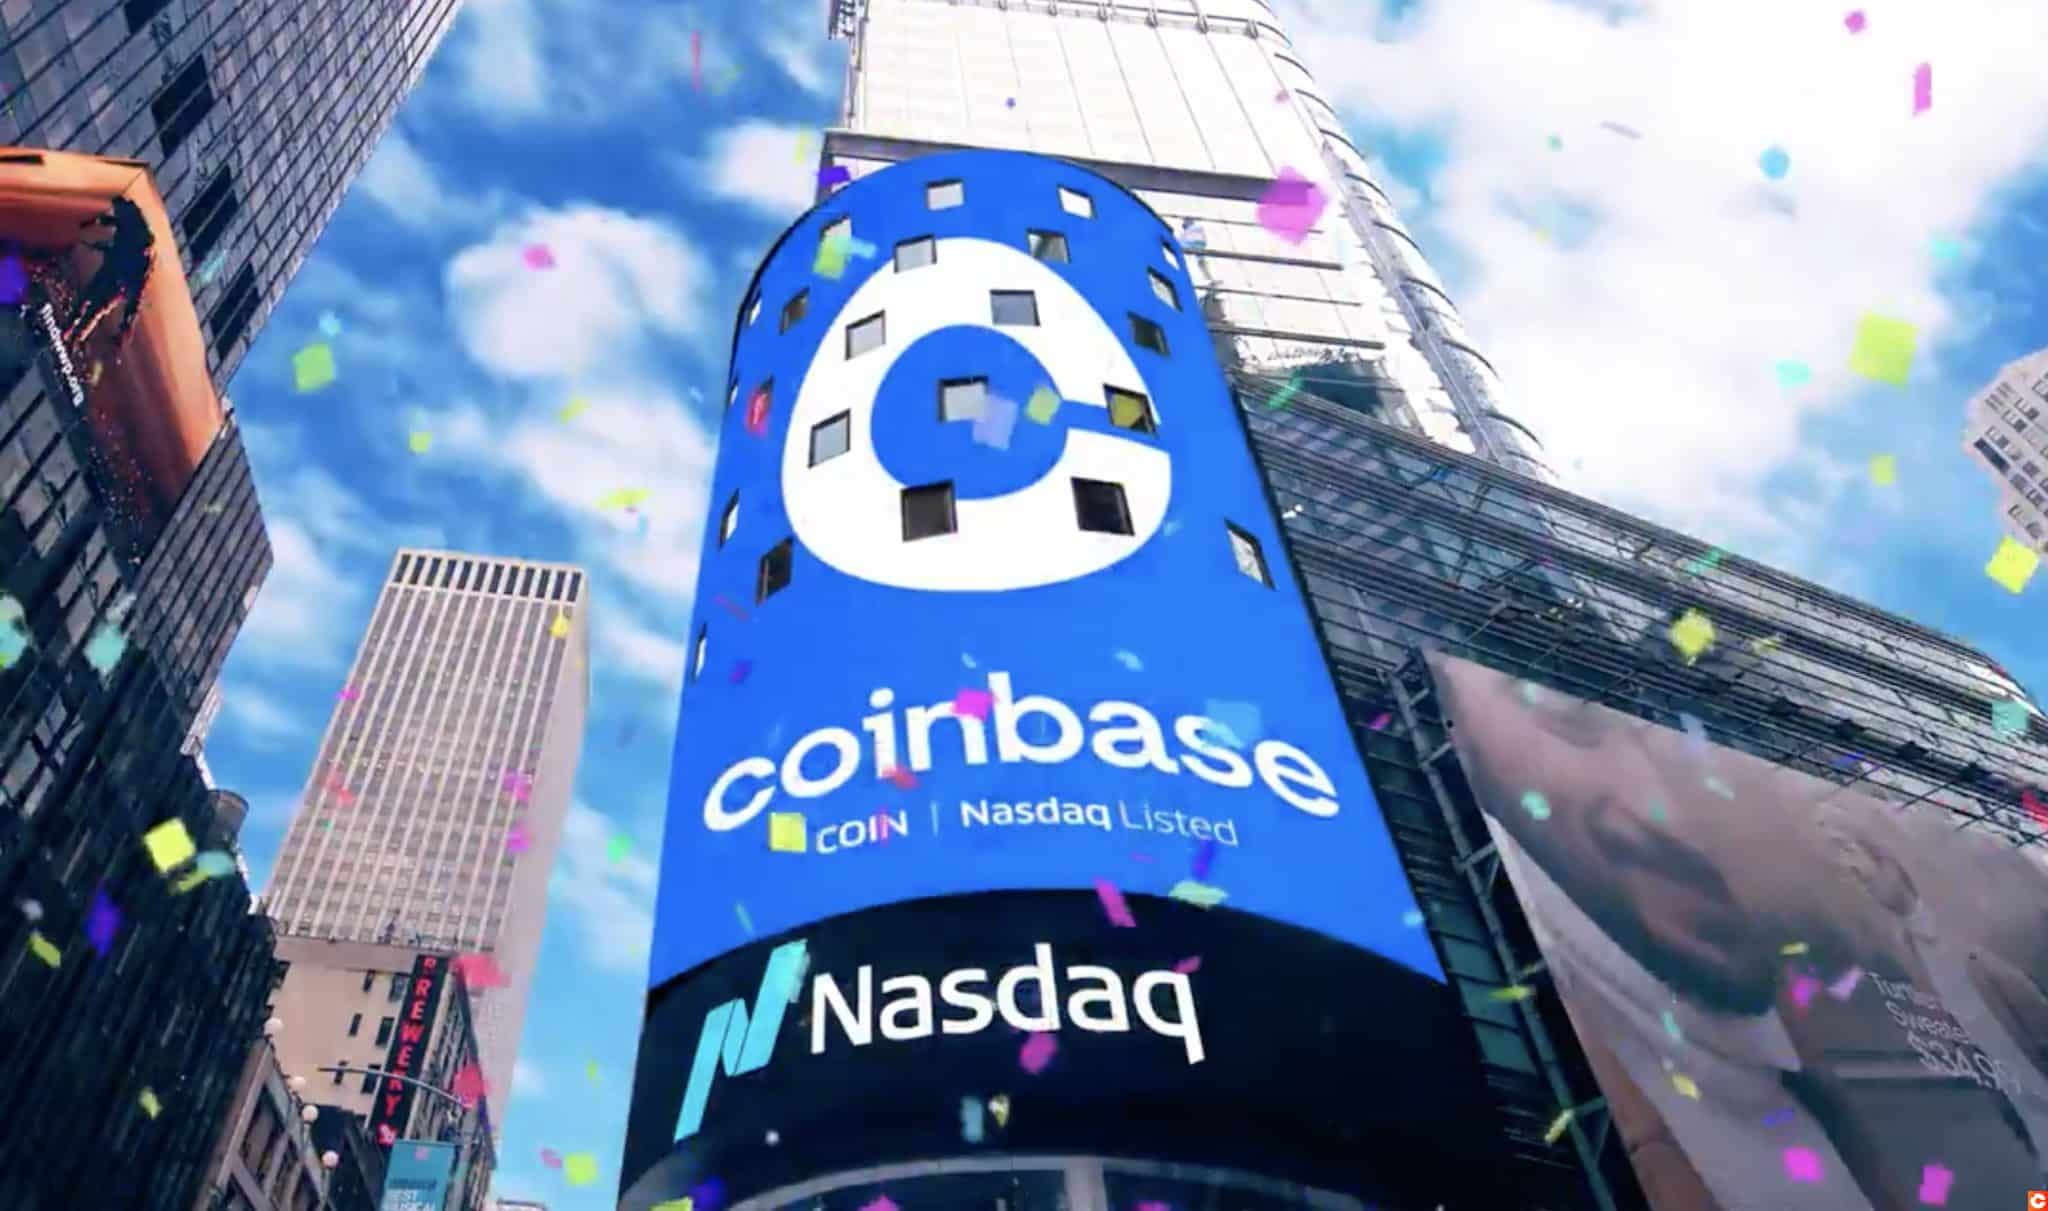 Coinbase to launch cryptocurrency exchange in Japan